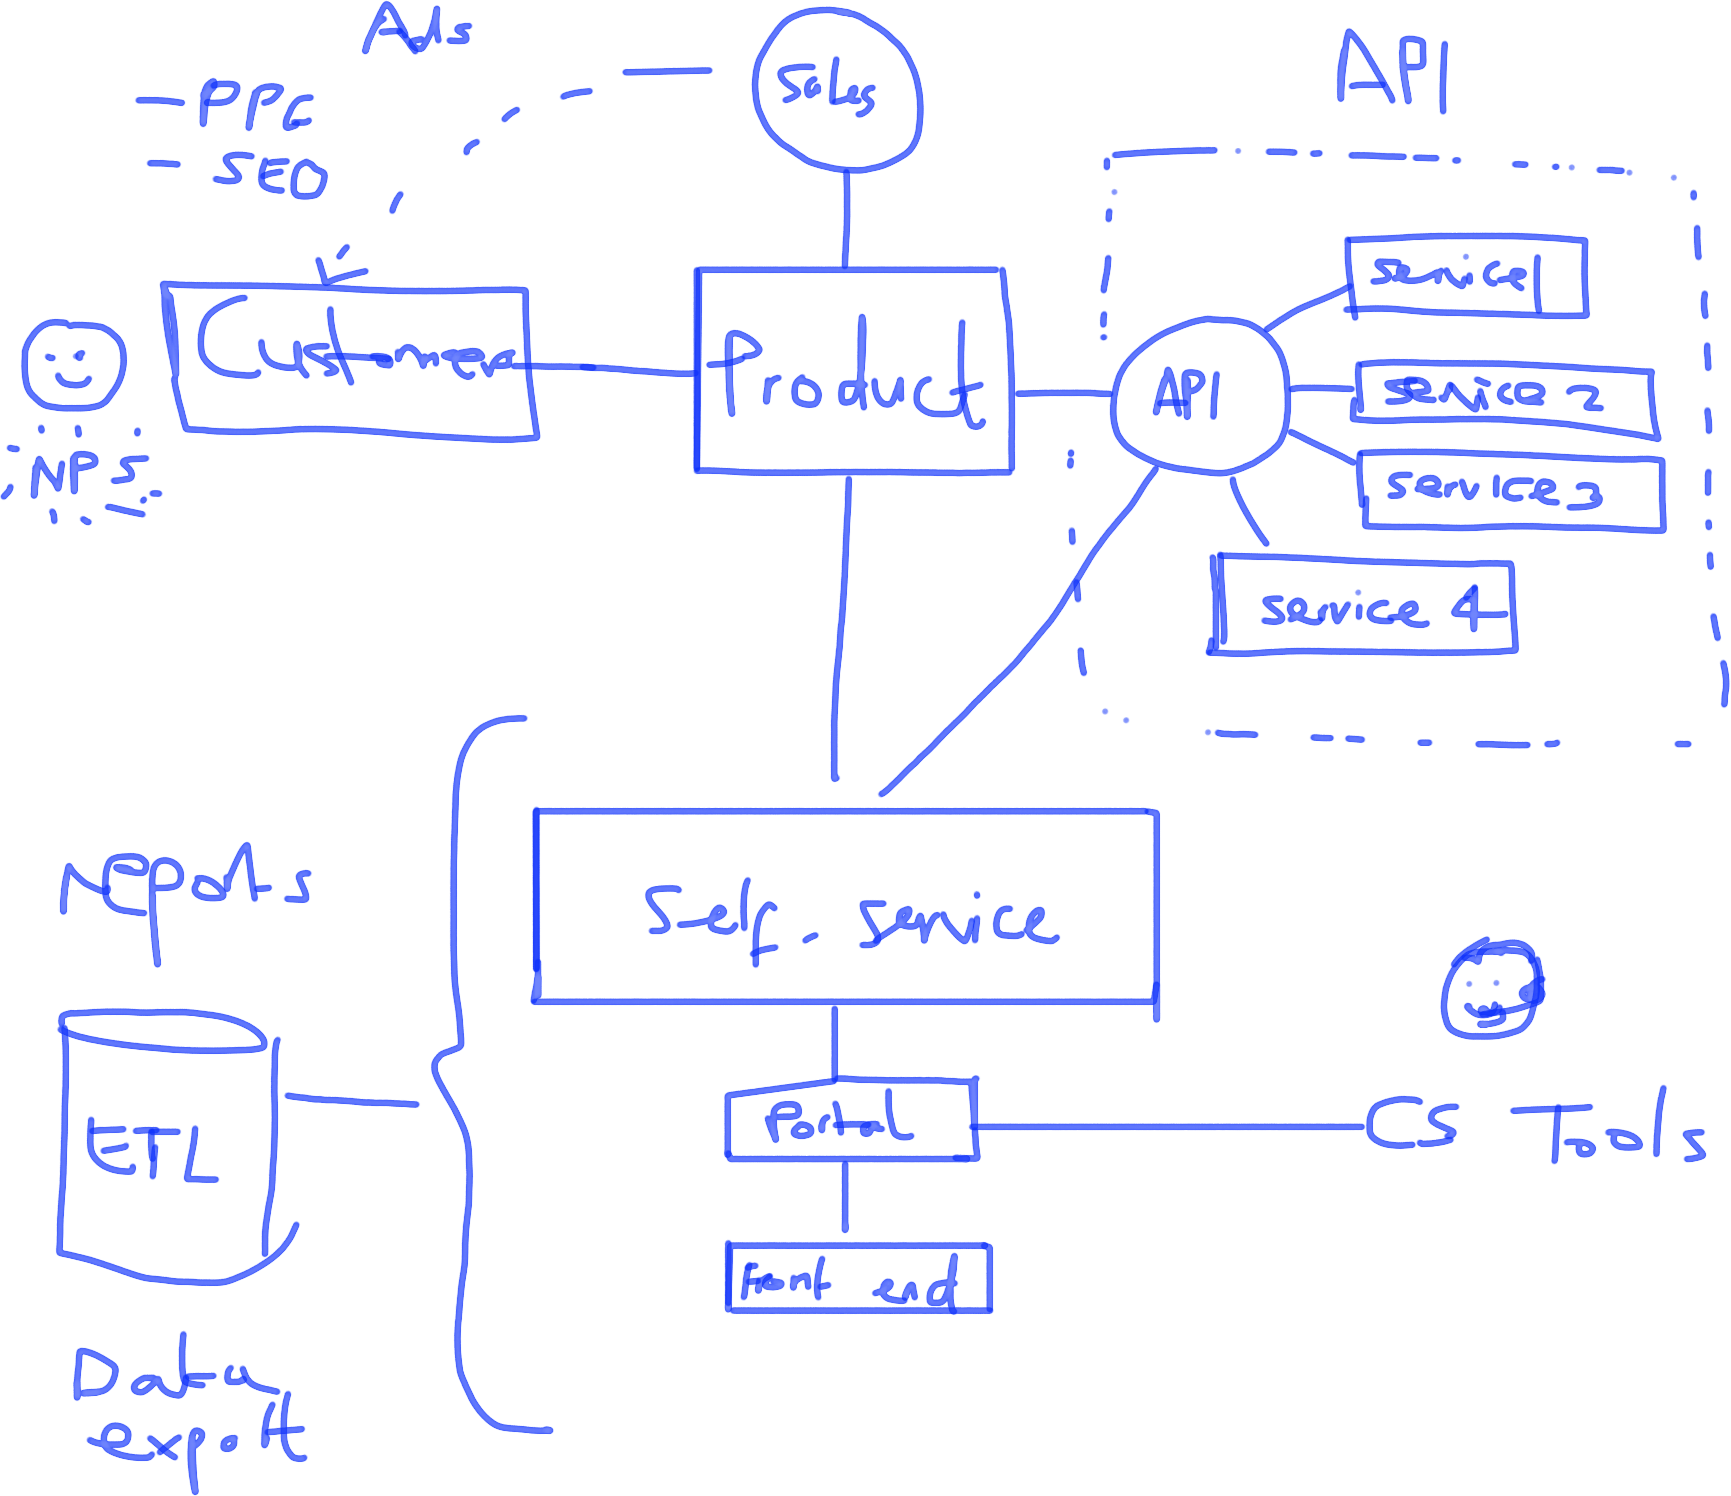 Whiteboard Writing Transparent Png Cli 2400046 Png Images Pngio Create freely, work naturally give your ideas room to grow with whiteboard. whiteboard writing transparent png